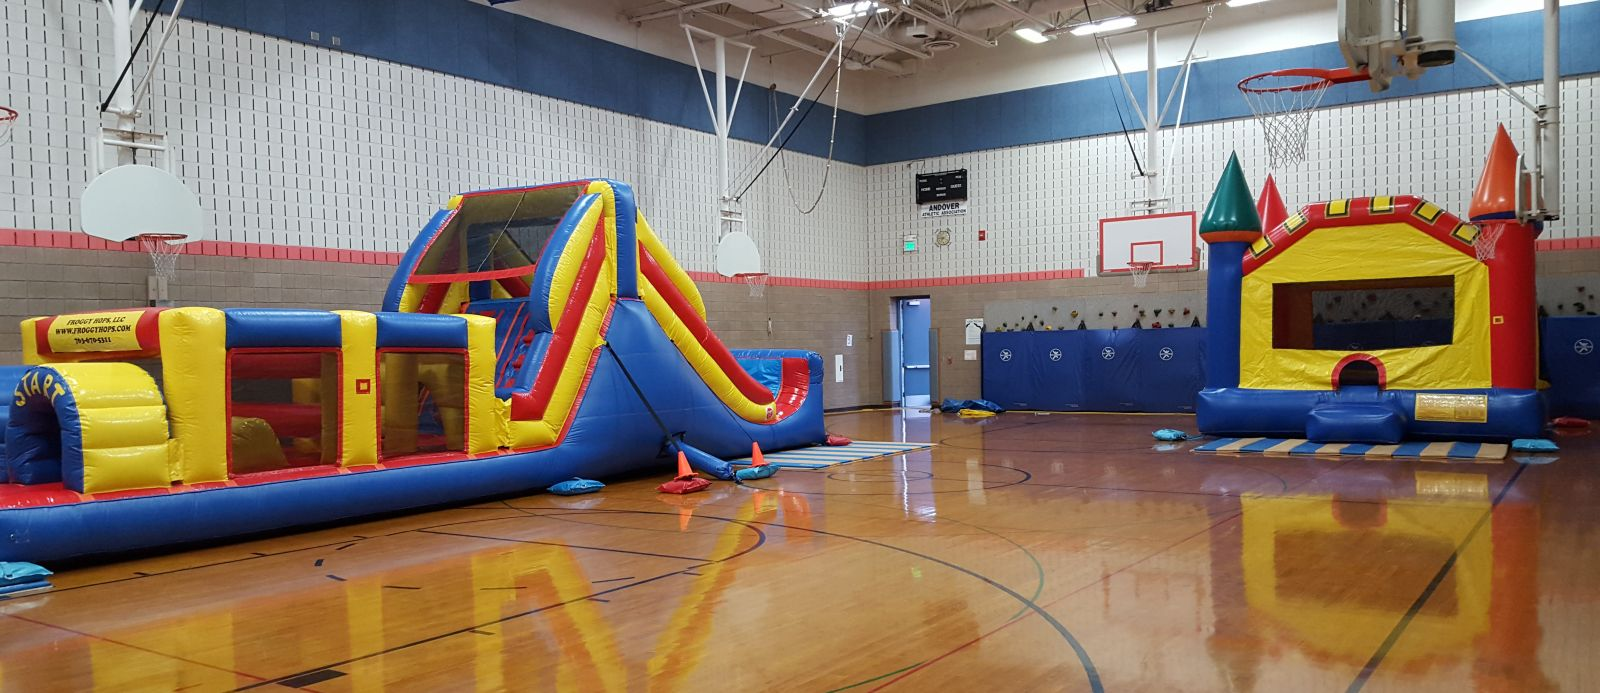 40' Obstacle Course and bounce house in school gym